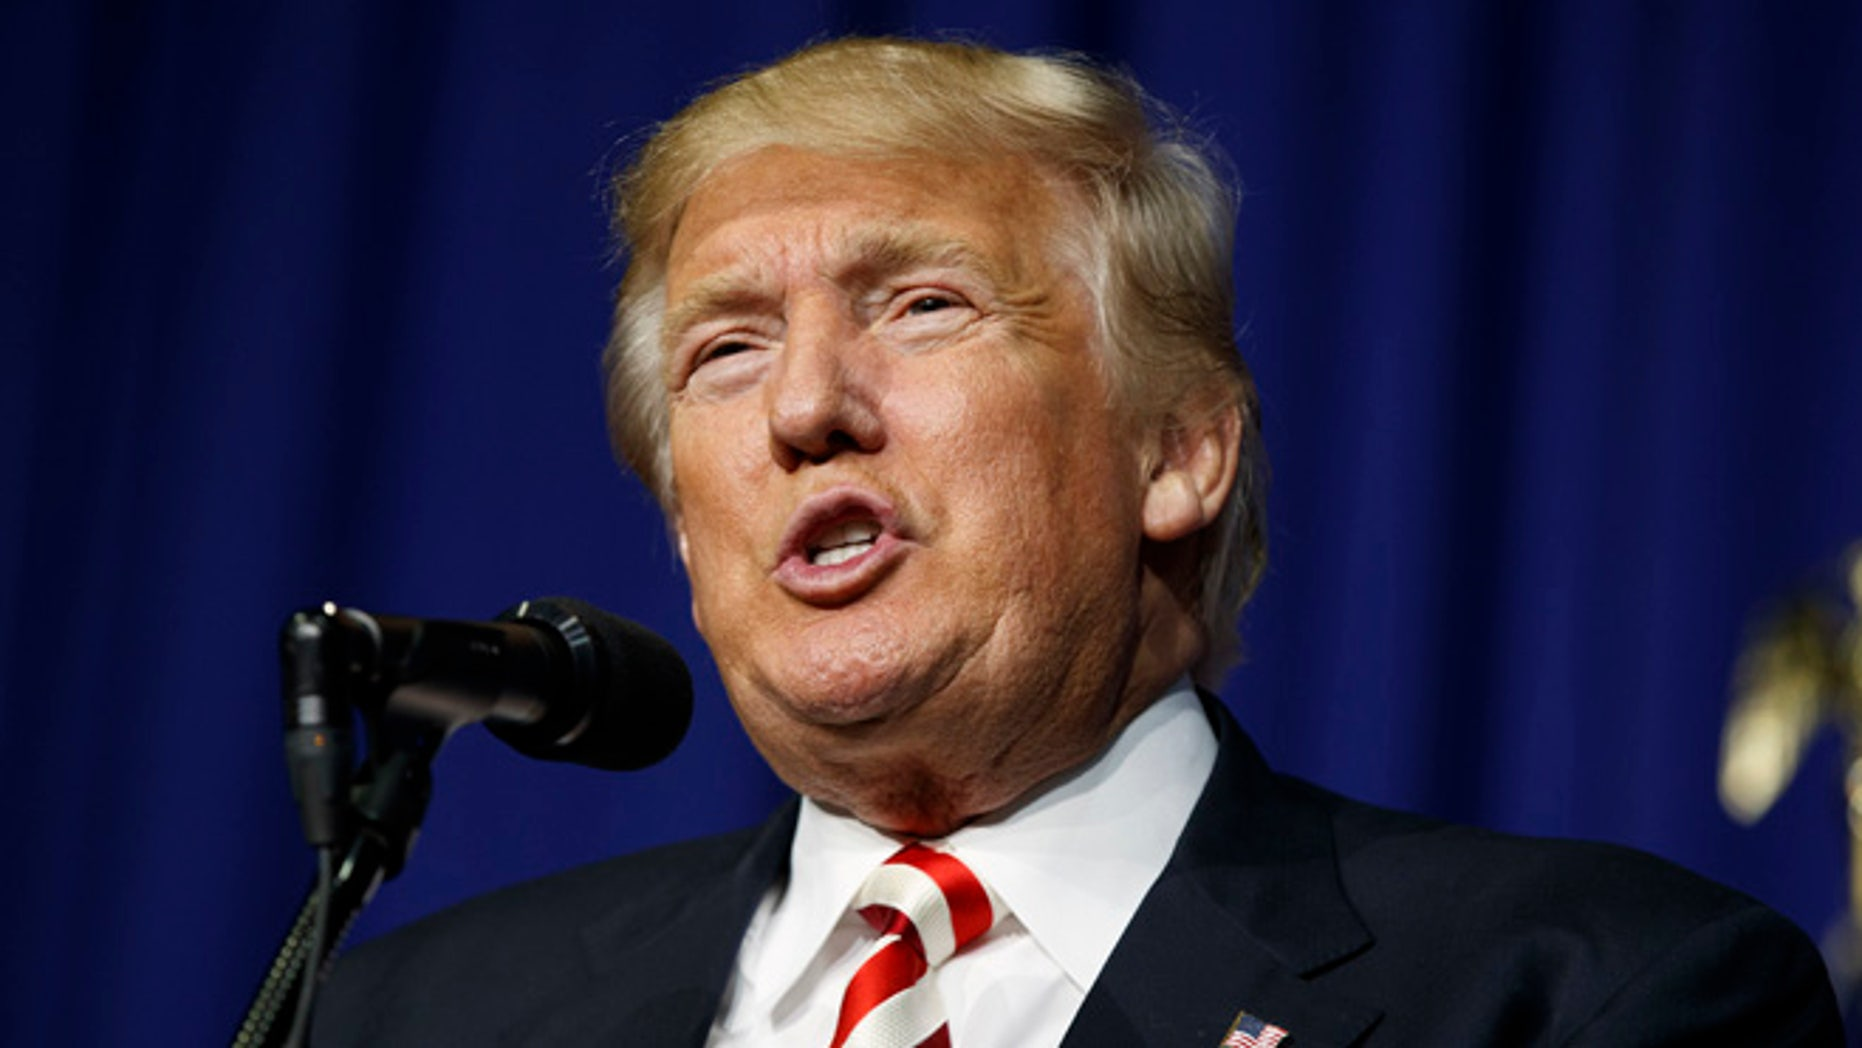 """FILE - In this Sept. 1, 2016 file photo, Republican presidential candidate Donald Trump speaks during a campaign rally in Wilmington, Ohio. The 2016 presidential election features two candidates with dramatically different approaches on immigration. In tone, Republican Donald Trump often highlights violent crimes perpetrated by immigrants in the country illegally with aggressive rhetoric that seizes on nationalism if not xenophobia. Democrat Hillary Clinton features a softer approach that embraces diversity and the value of keeping immigrant families together, even as her critics accuse her of promoting """"open borders."""" (AP Photo/Evan Vucci, File)"""